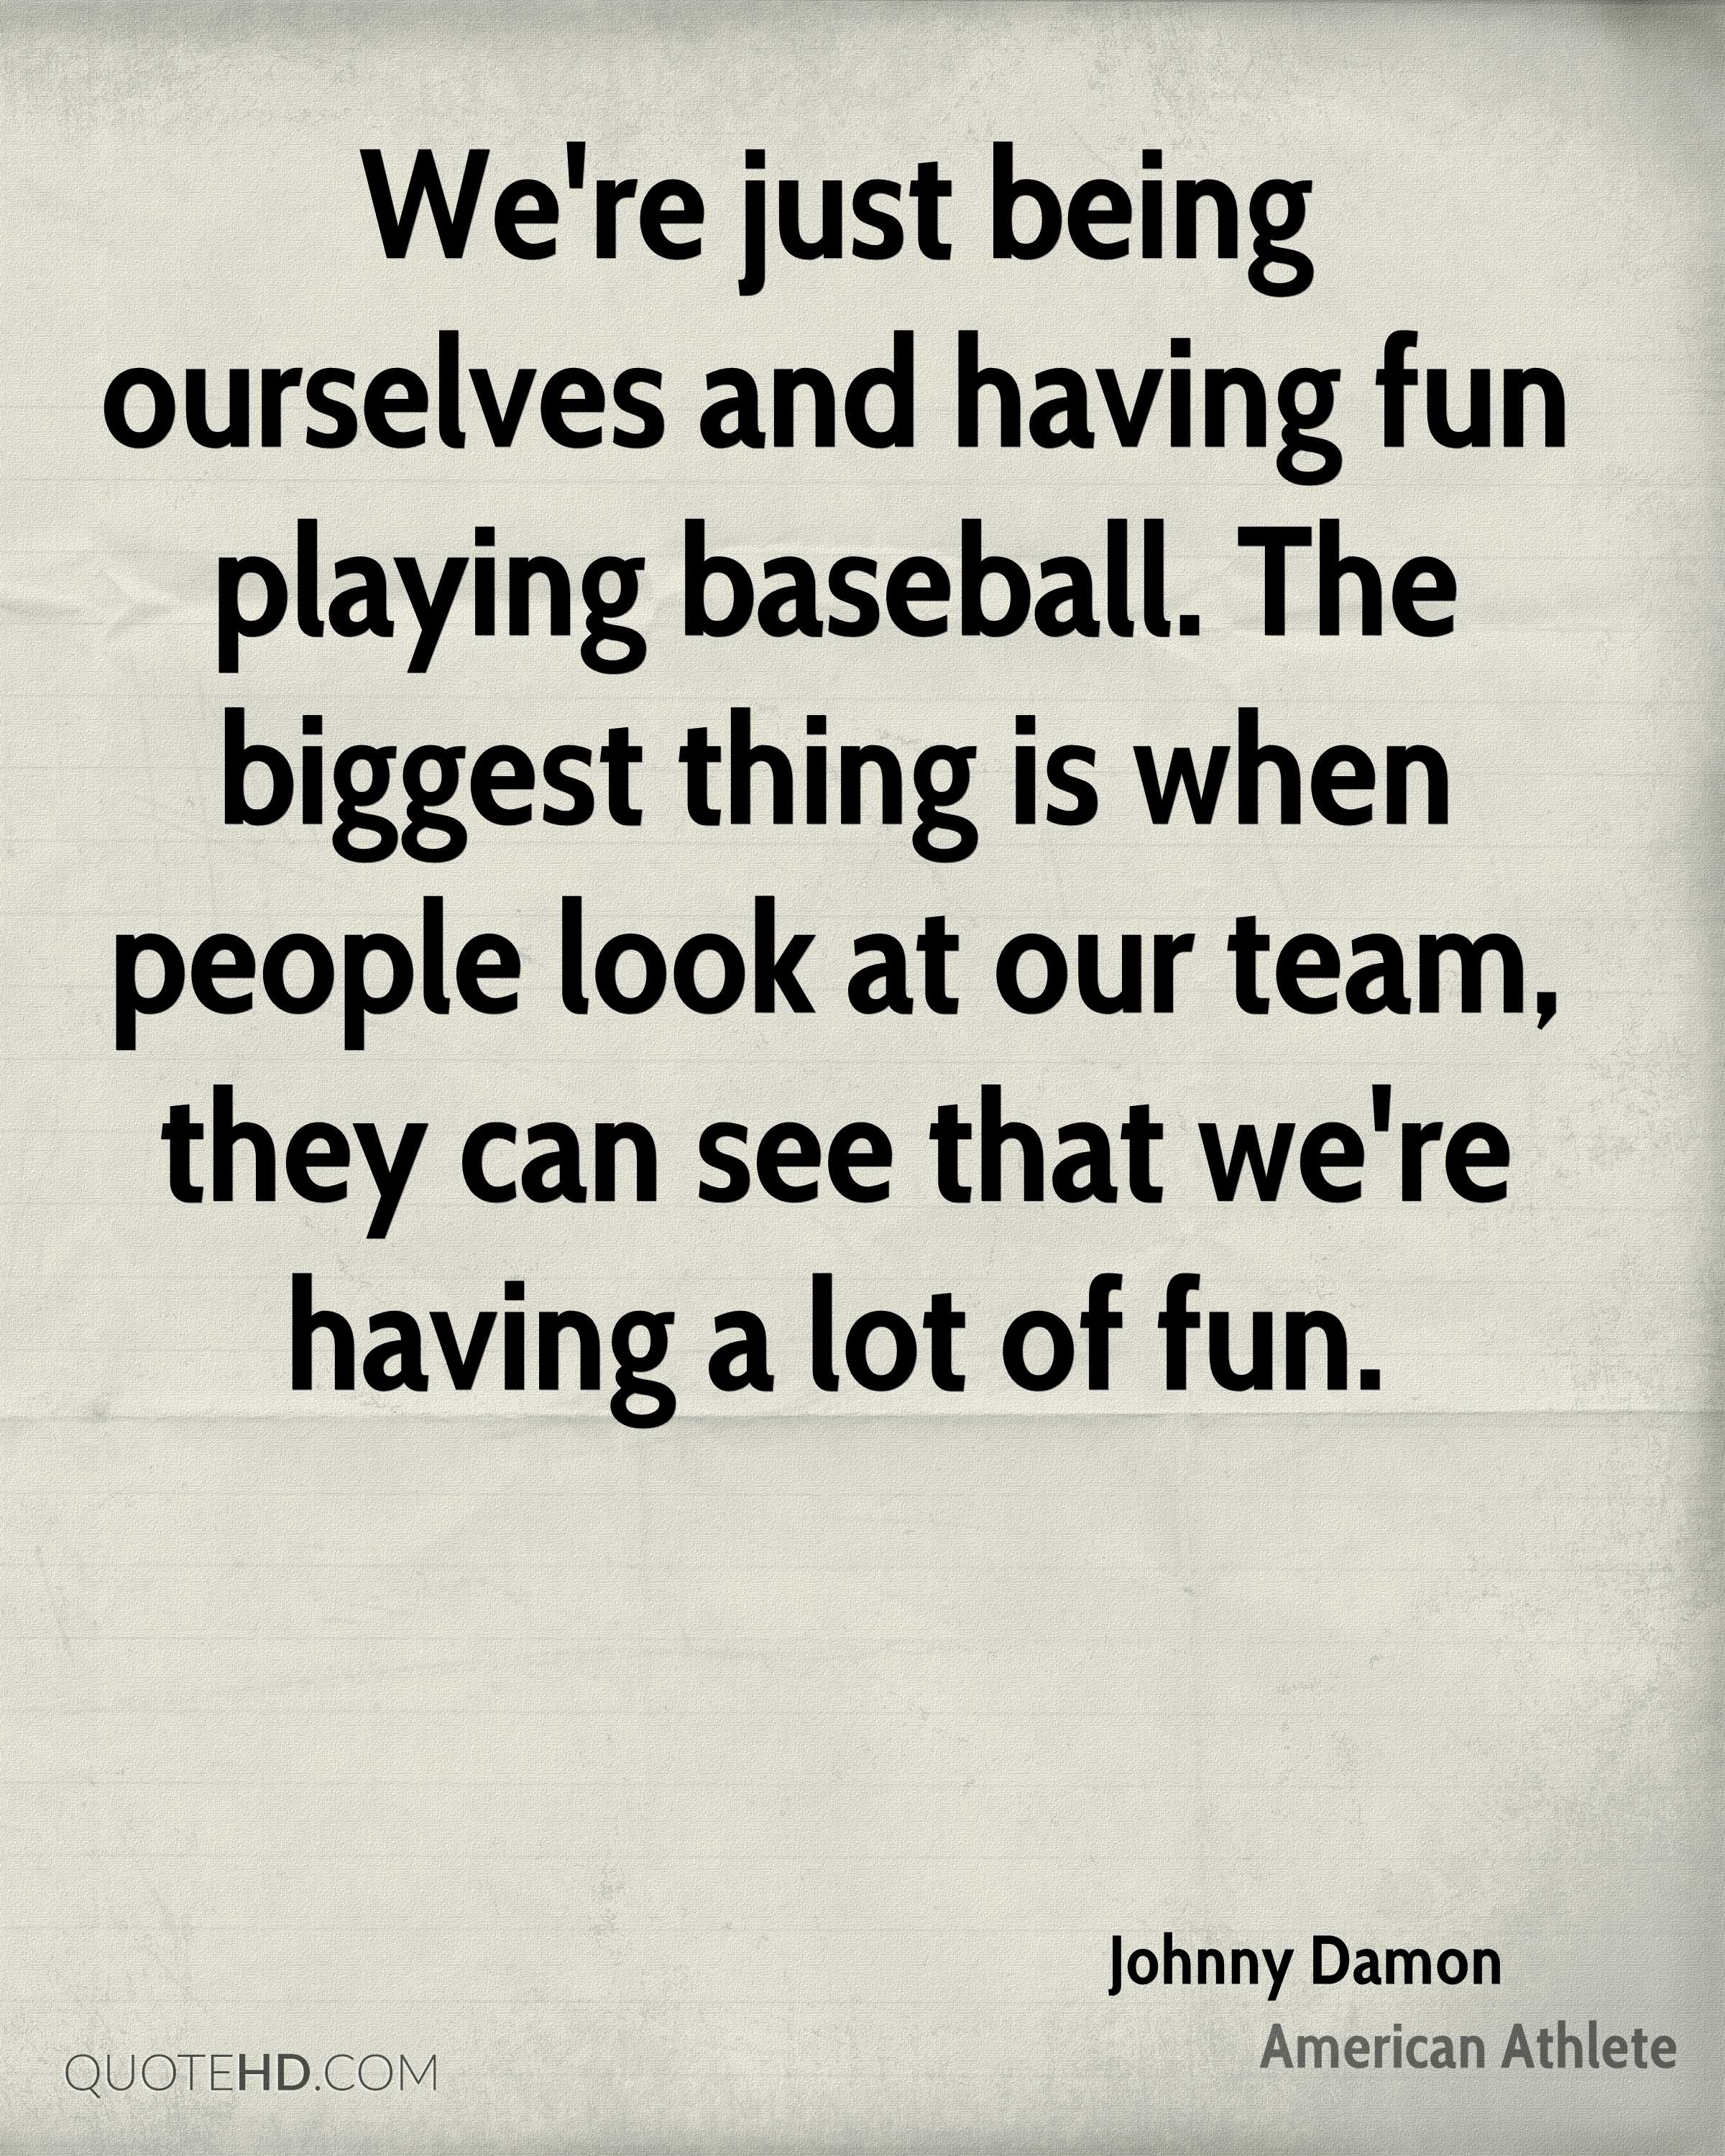 We're just being ourselves and having fun playing baseball. The biggest thing is when people look at our team, they can see that we're having a lot of fun.